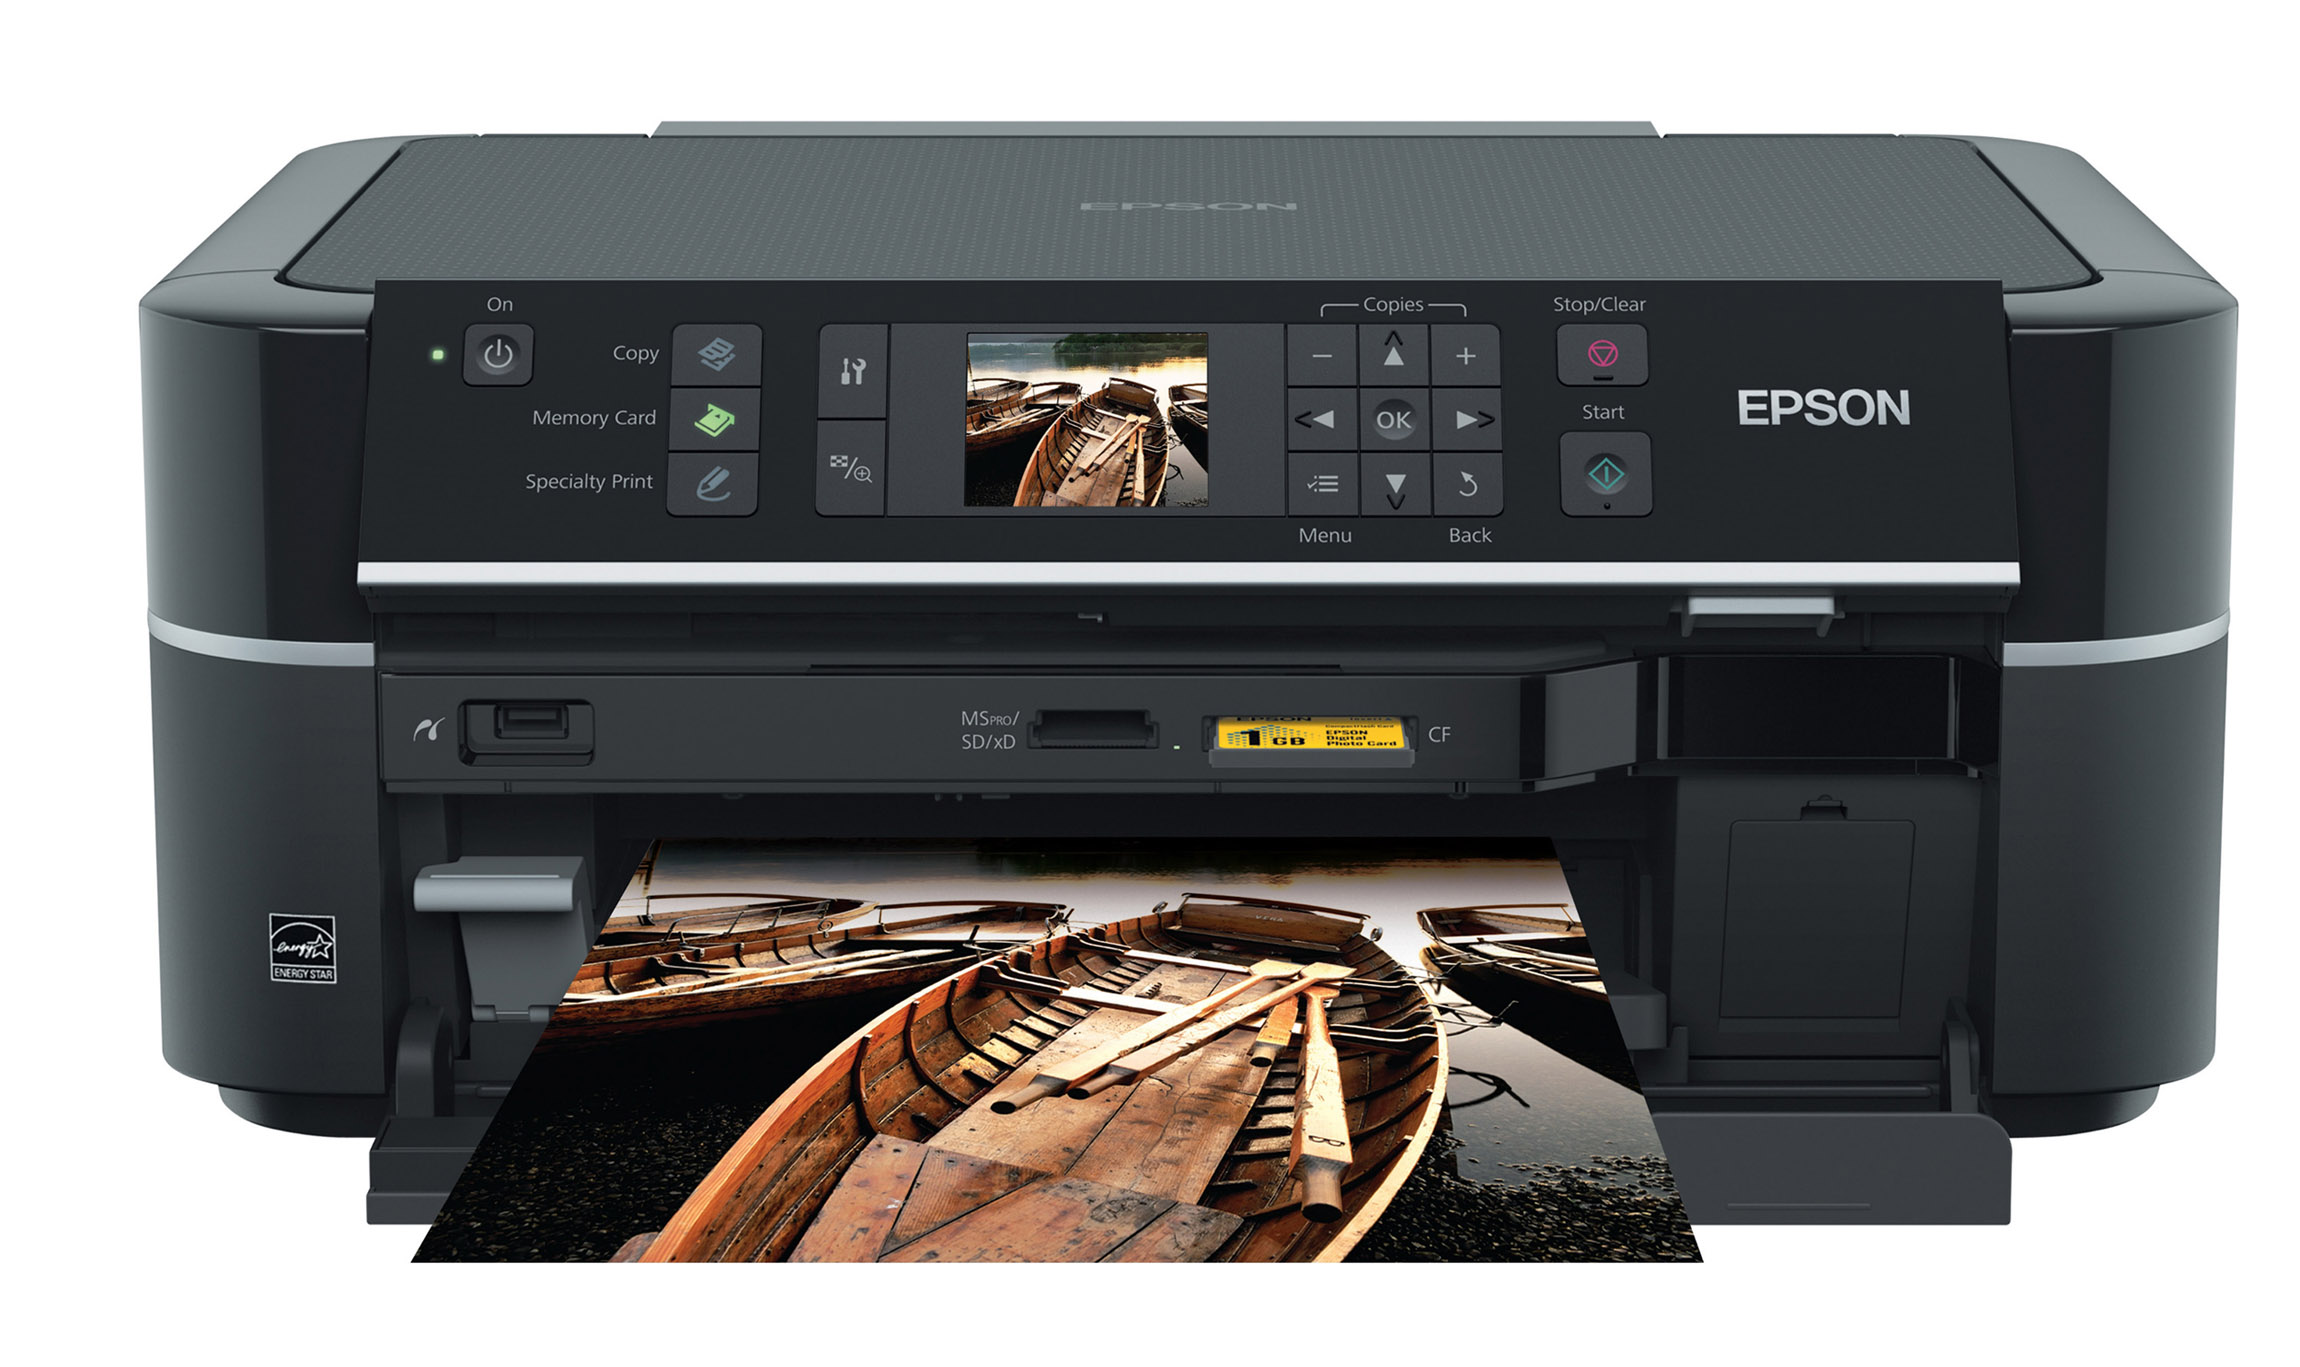 Epson Stylus Photo TX650 Resetter